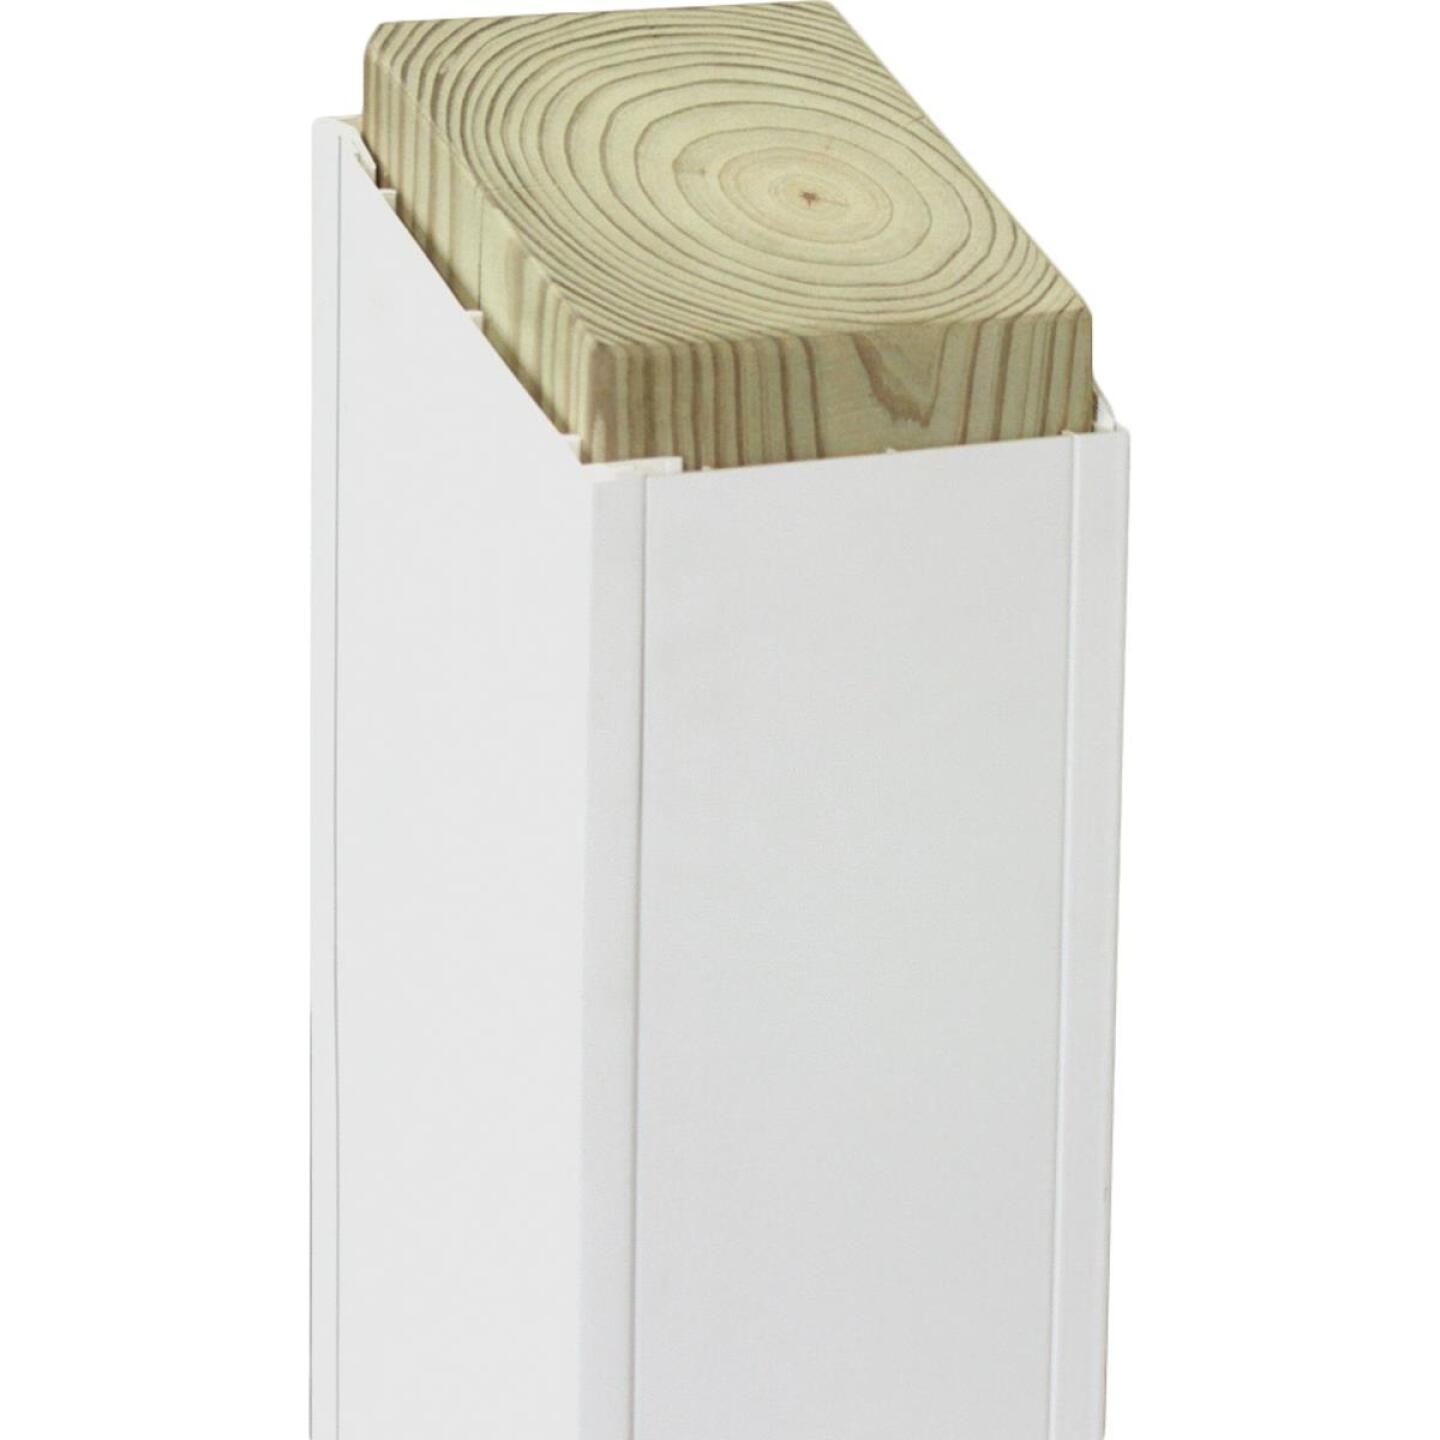 Beechdale 6 In. W x 6 In. H x 120 In. L White PVC Smooth Post Wrap Image 1